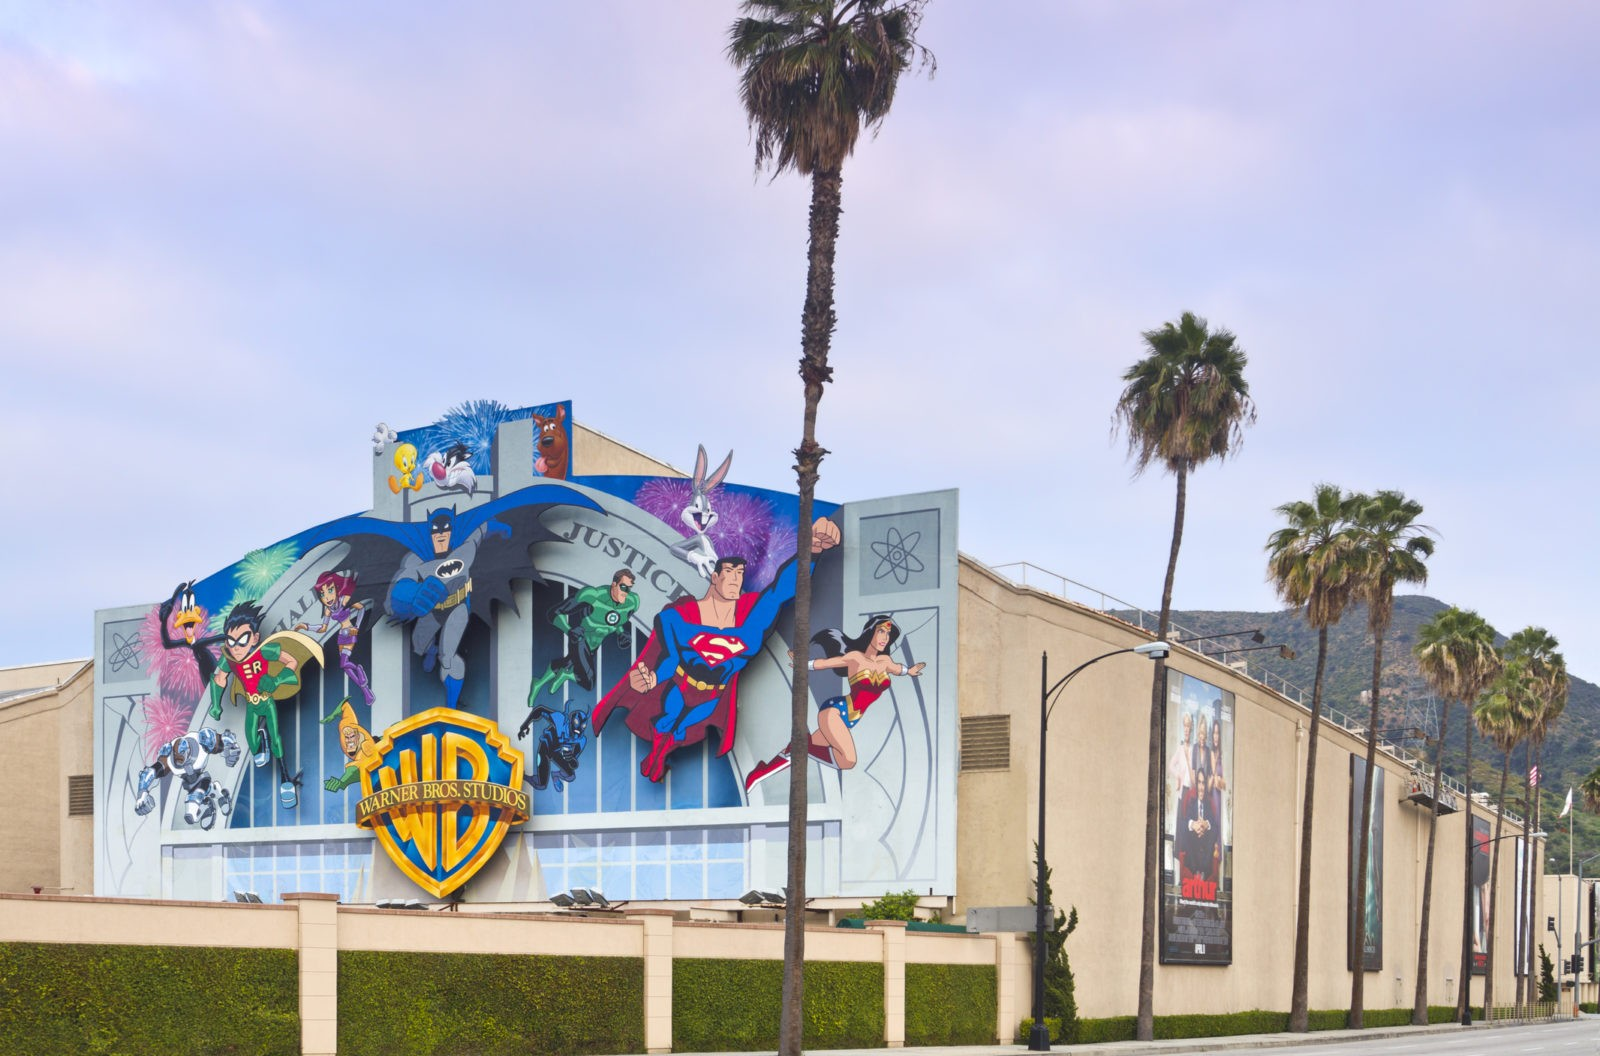 Warner Bros. Film Studio in Burbank, CA